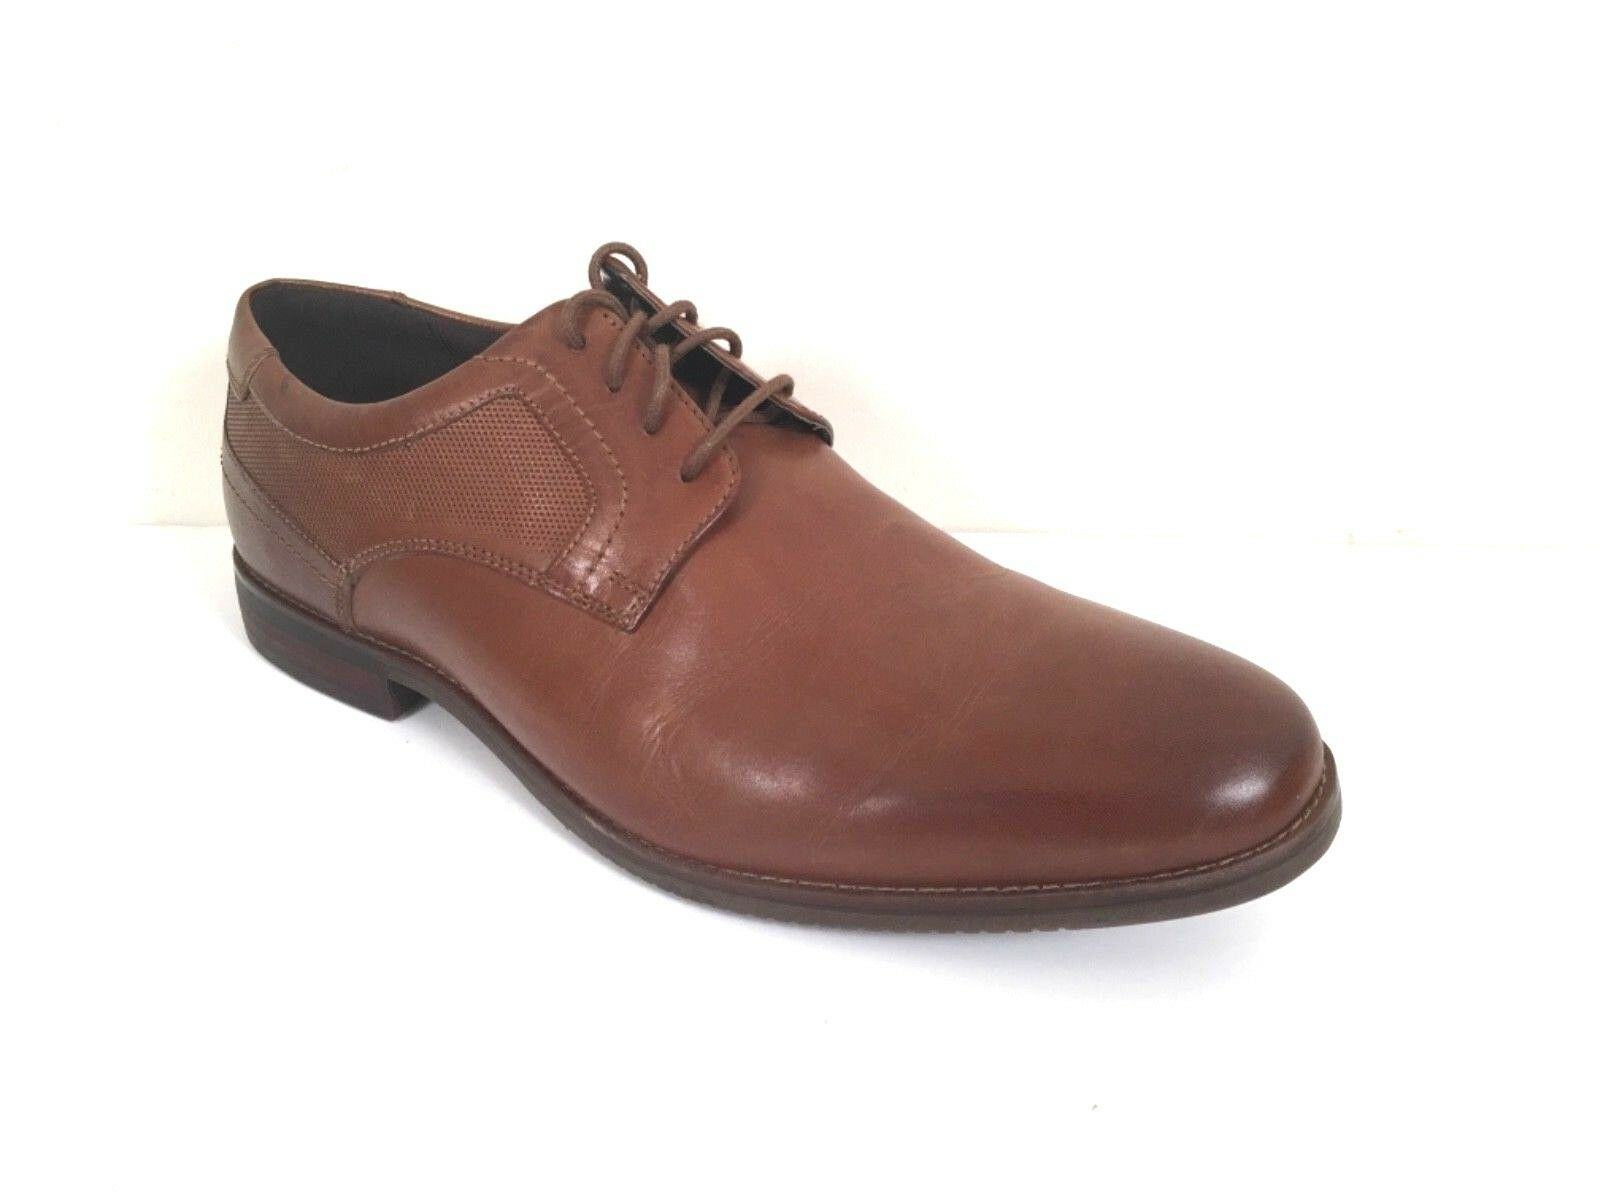 Rockport Tobacco Plain Toe Brown Oxford, Dress Leather shoes 12 W Men's 12W Wide